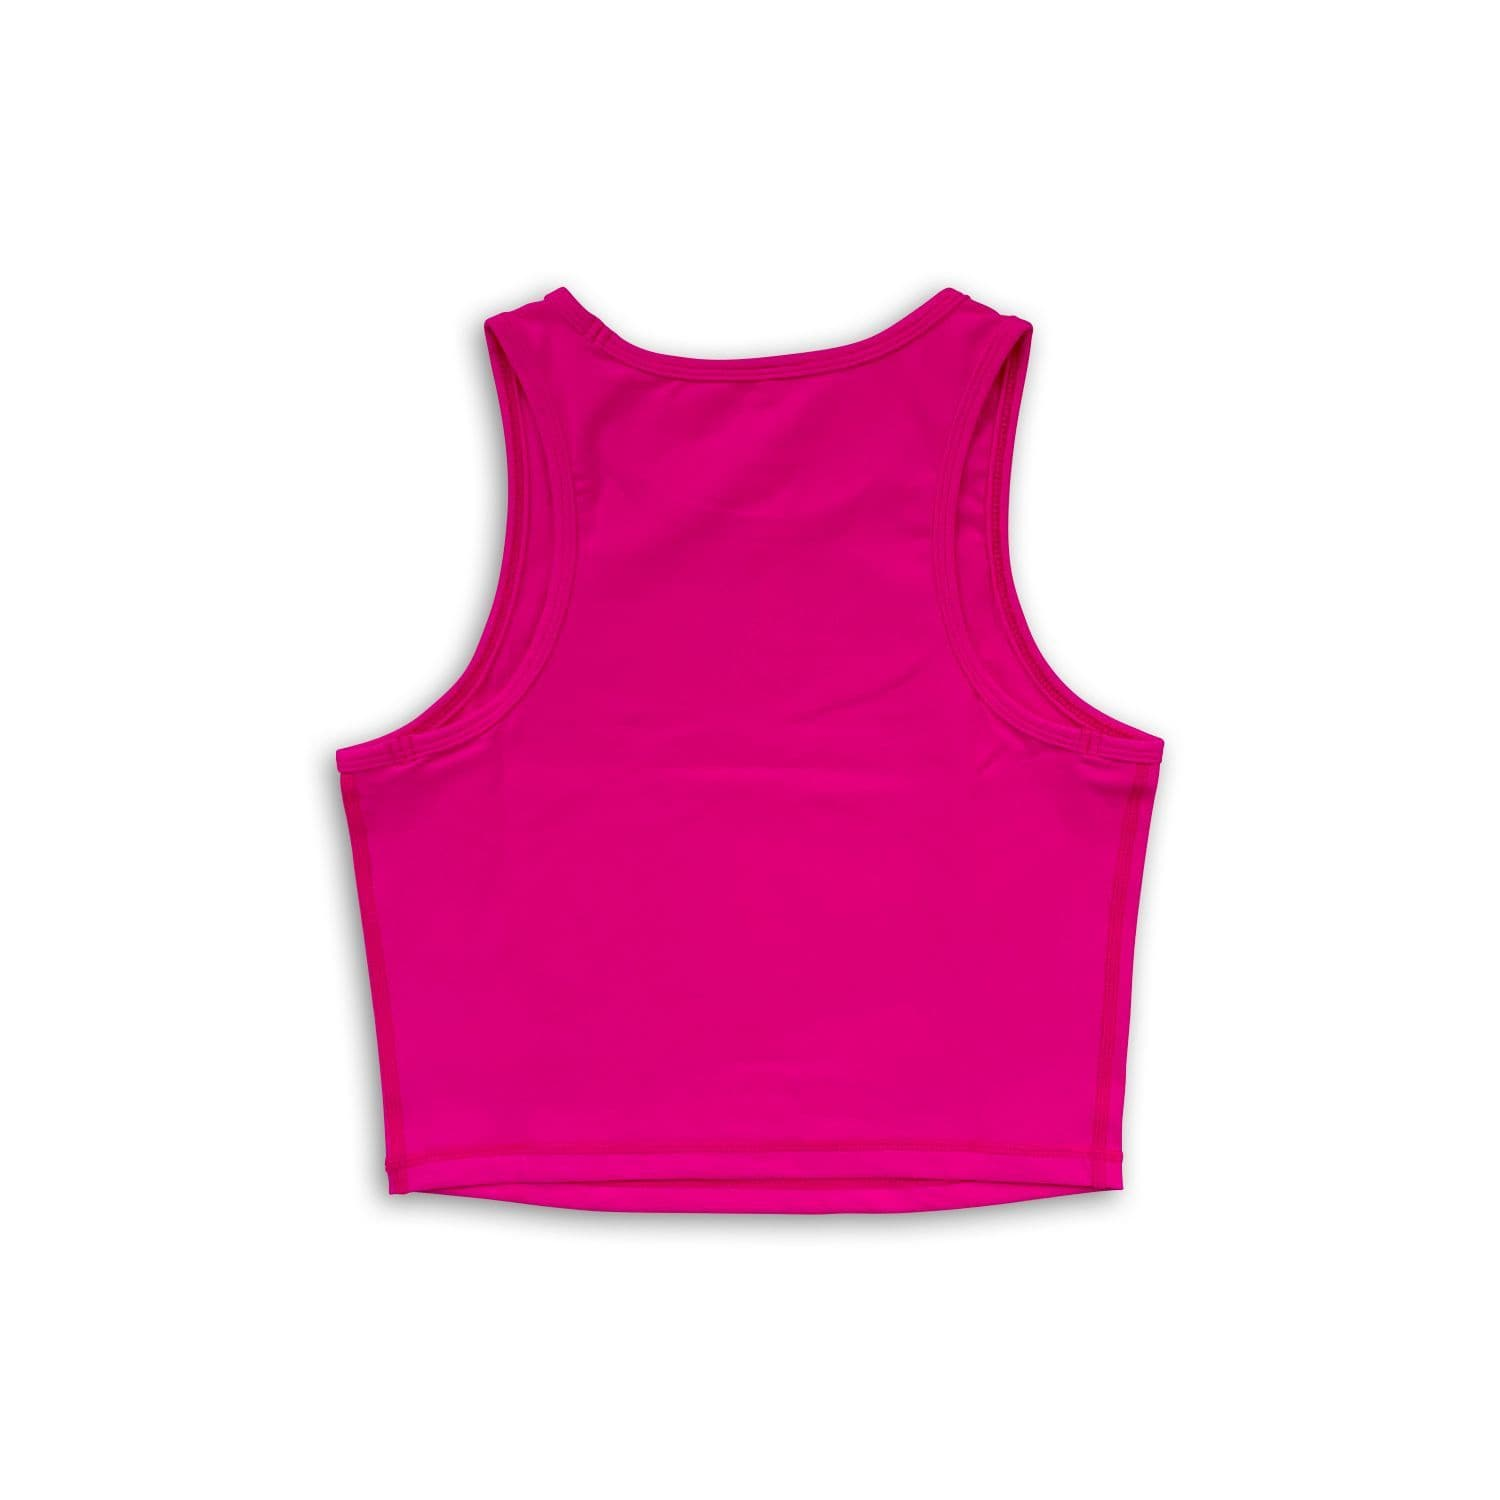 Racerback Crop Top - Hot Pink